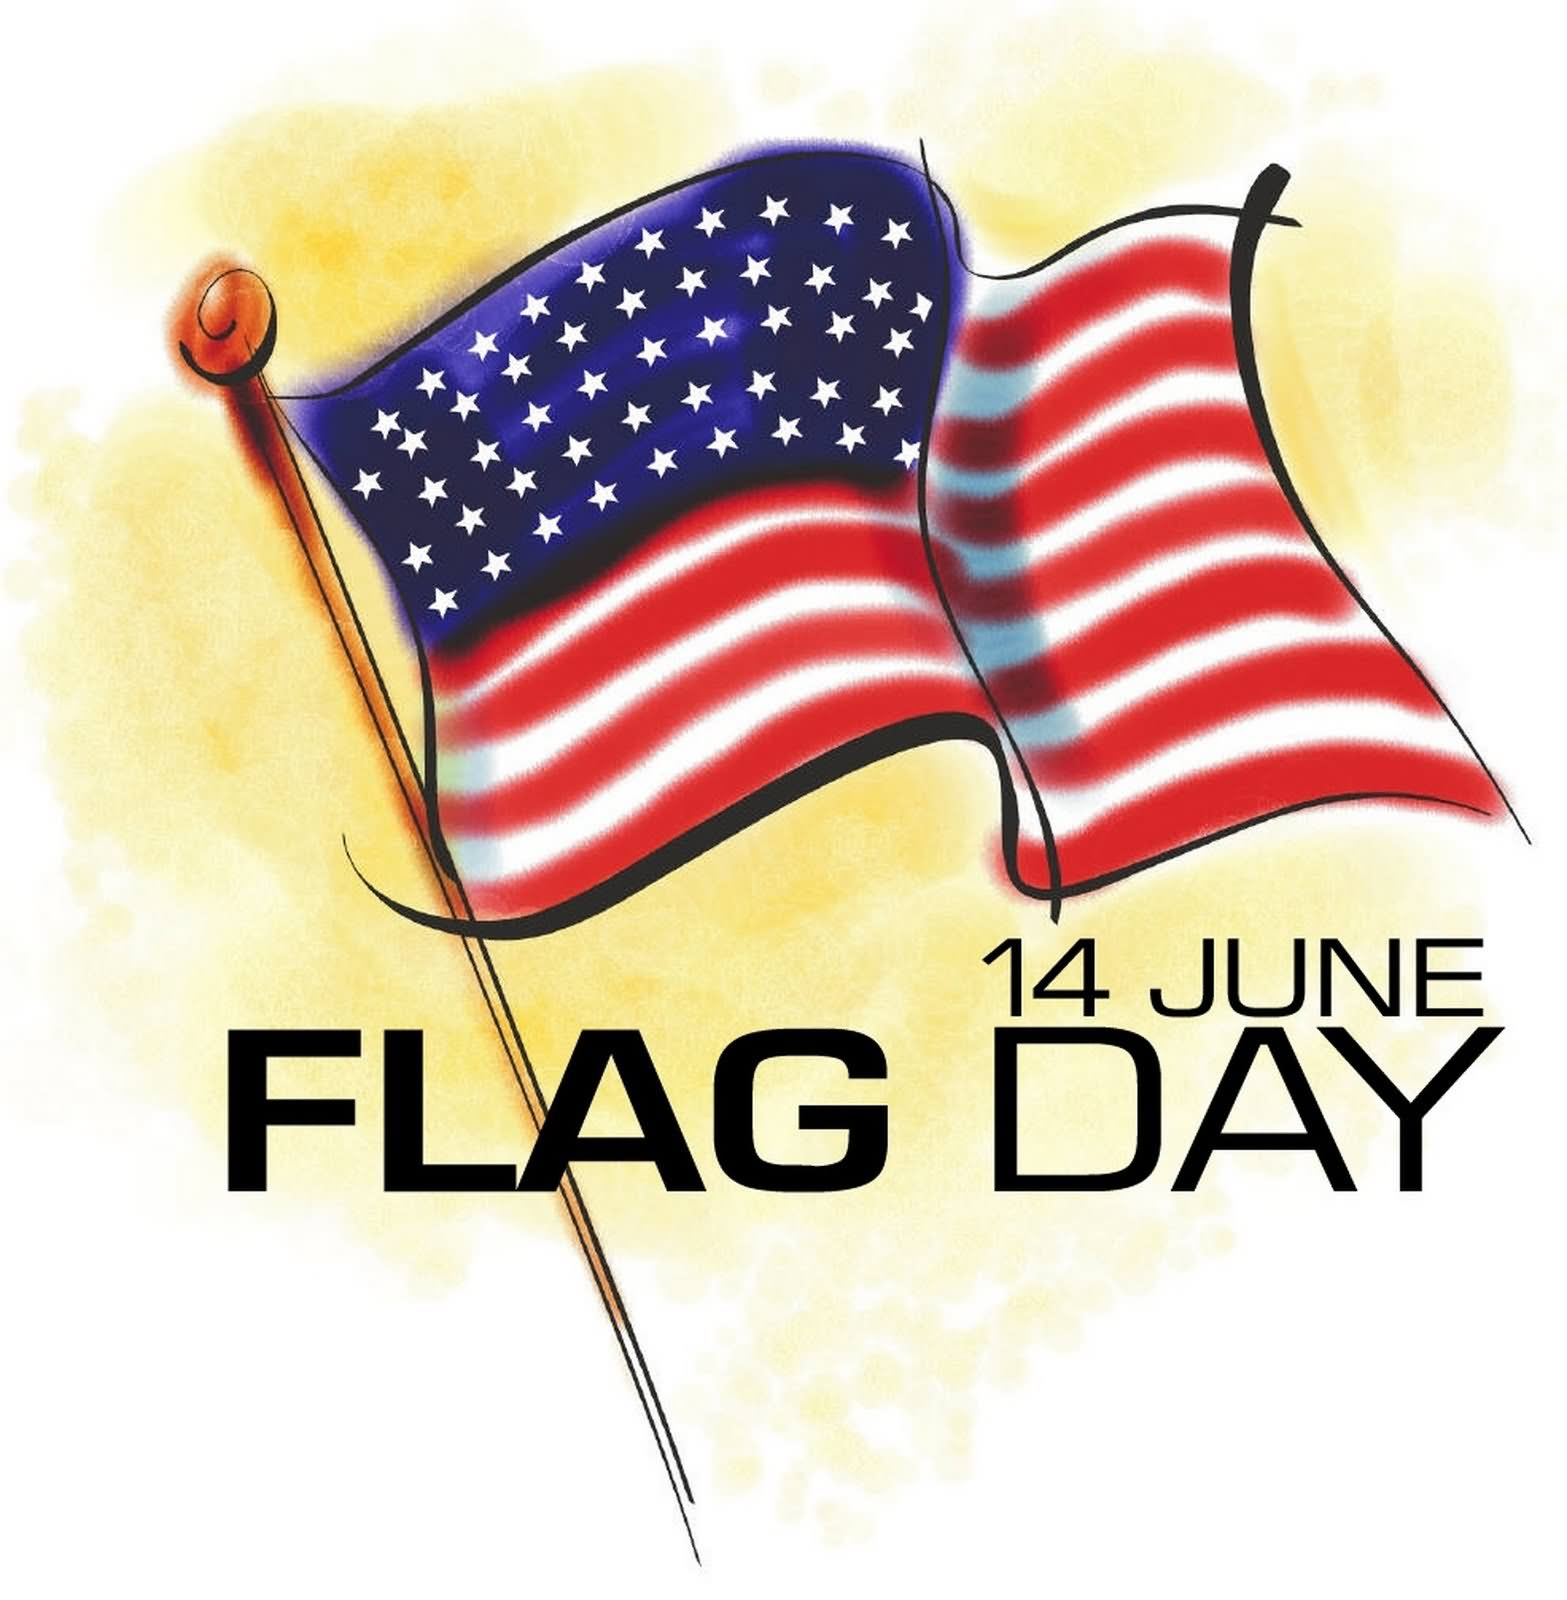 15 wonderful flag day clipart images and pictures rh askideas com flag day clip art for facebook cover flag day clip art free download